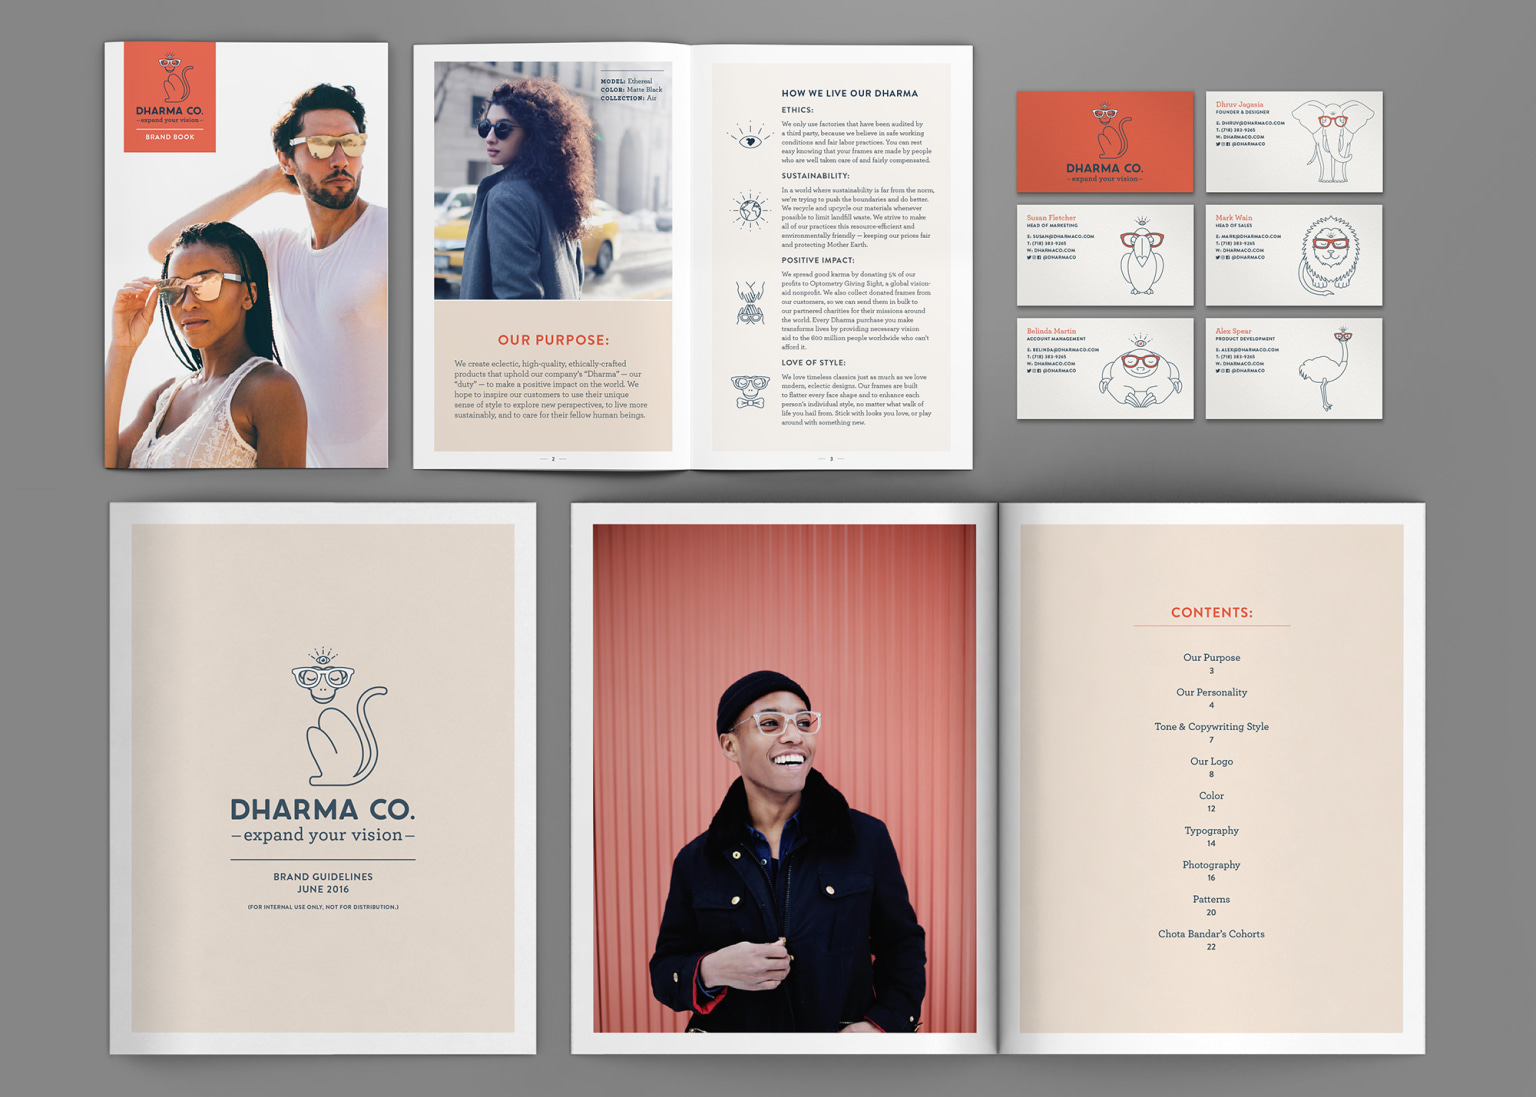 Dharma Co. Branding and Design